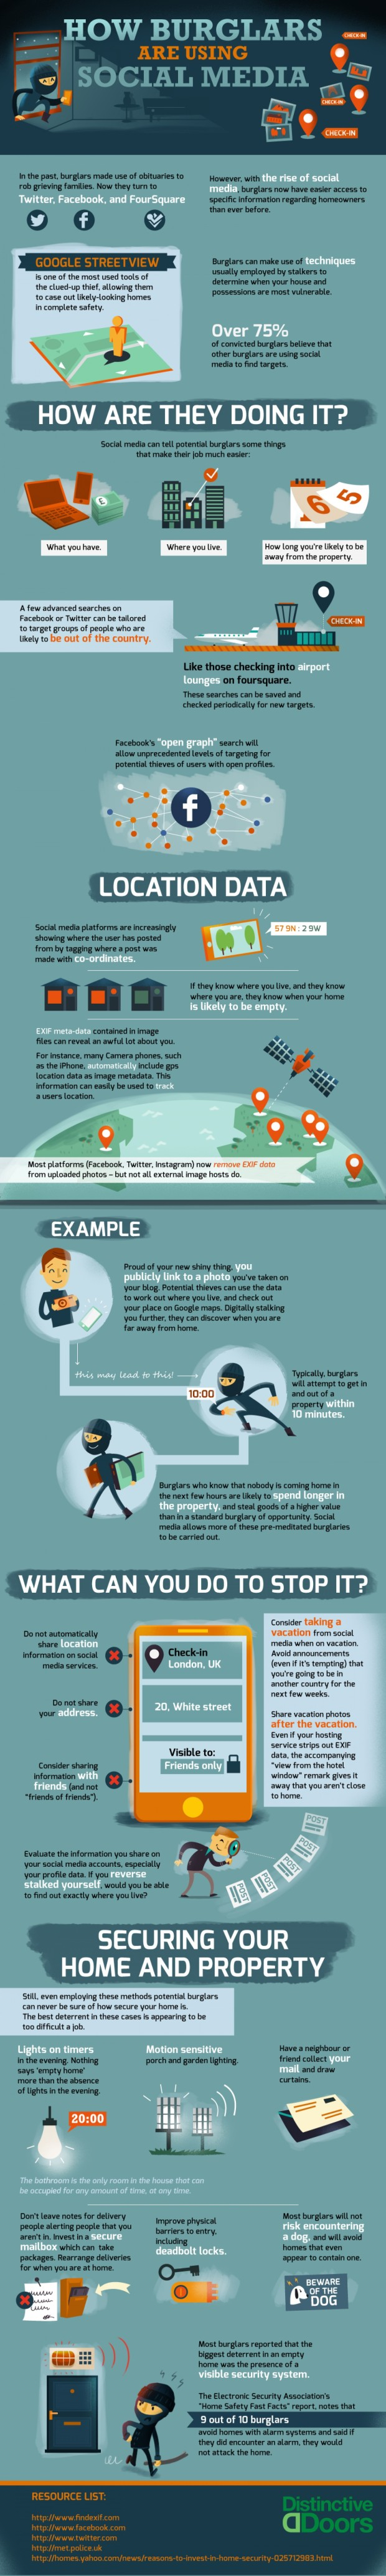 How Burglars are Becoming Savvy Social Media Users [INFOGRAPHIC]